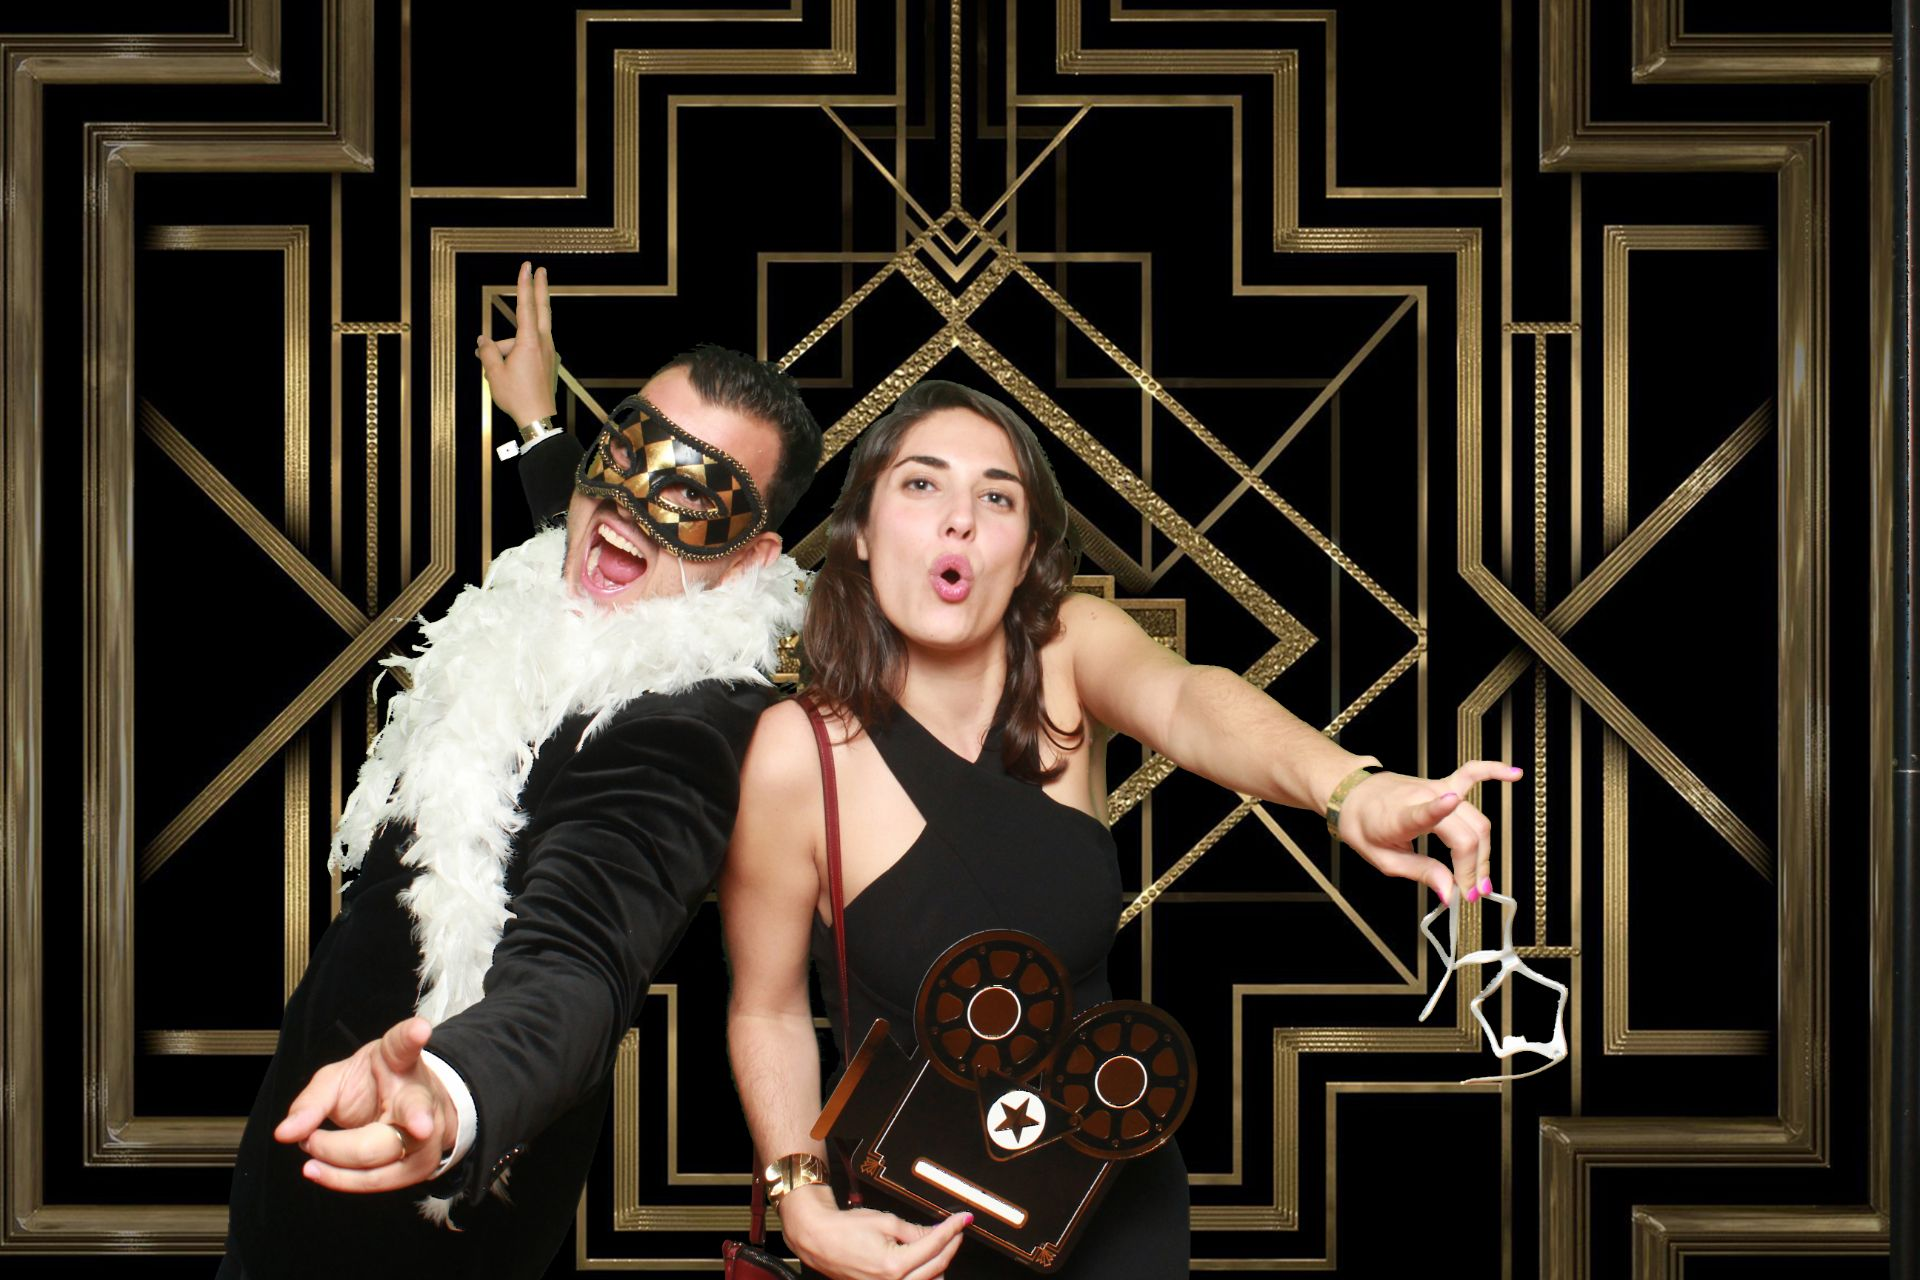 Hollywood themed photo booths